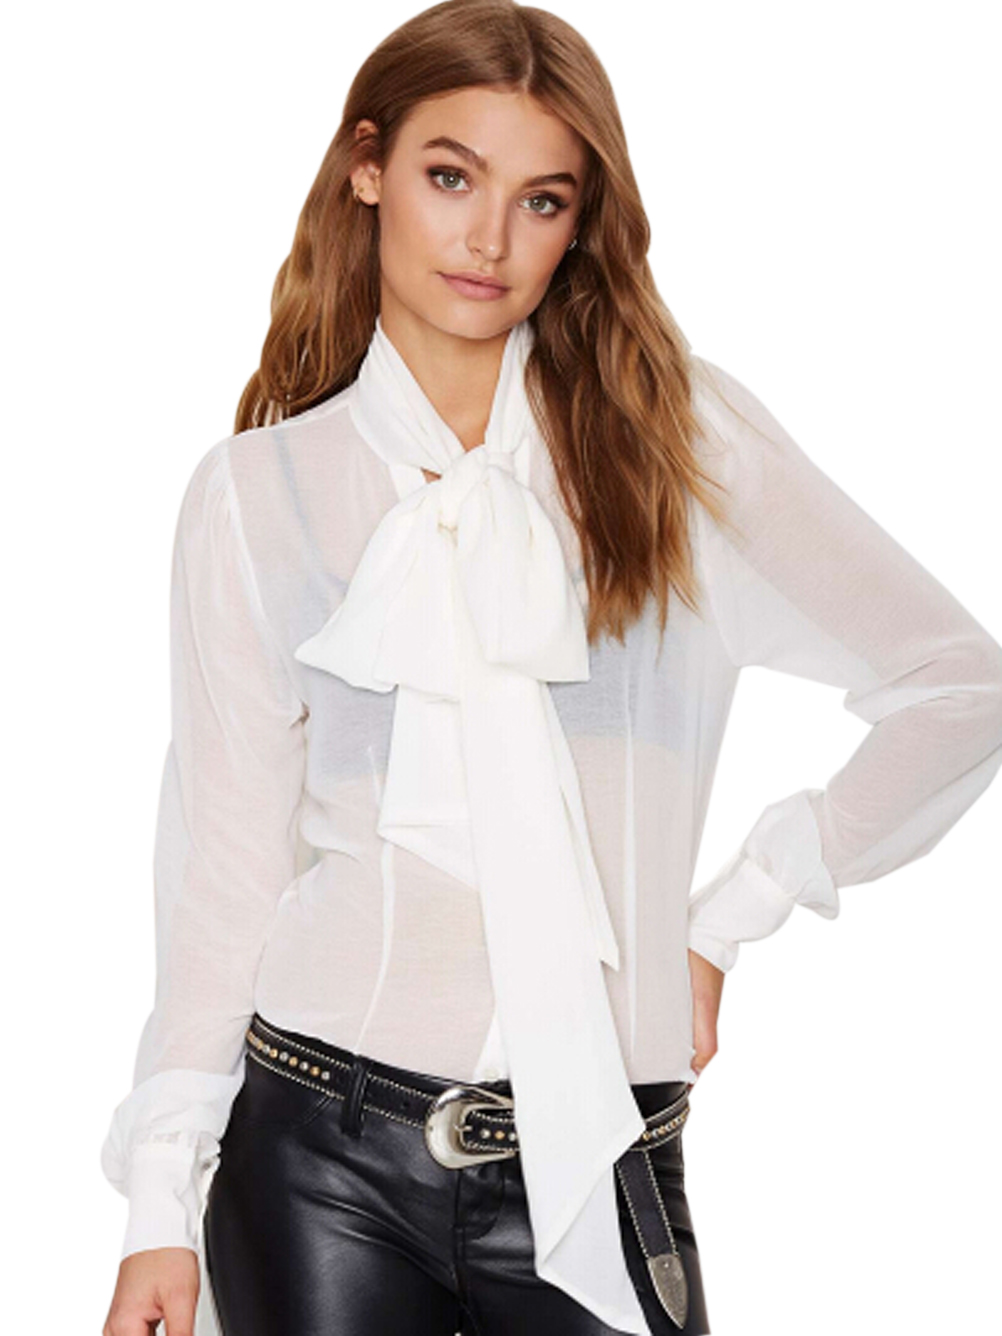 6046e63c Blouses. We carry a vast selection of ladies' blouses in all kinds of styles